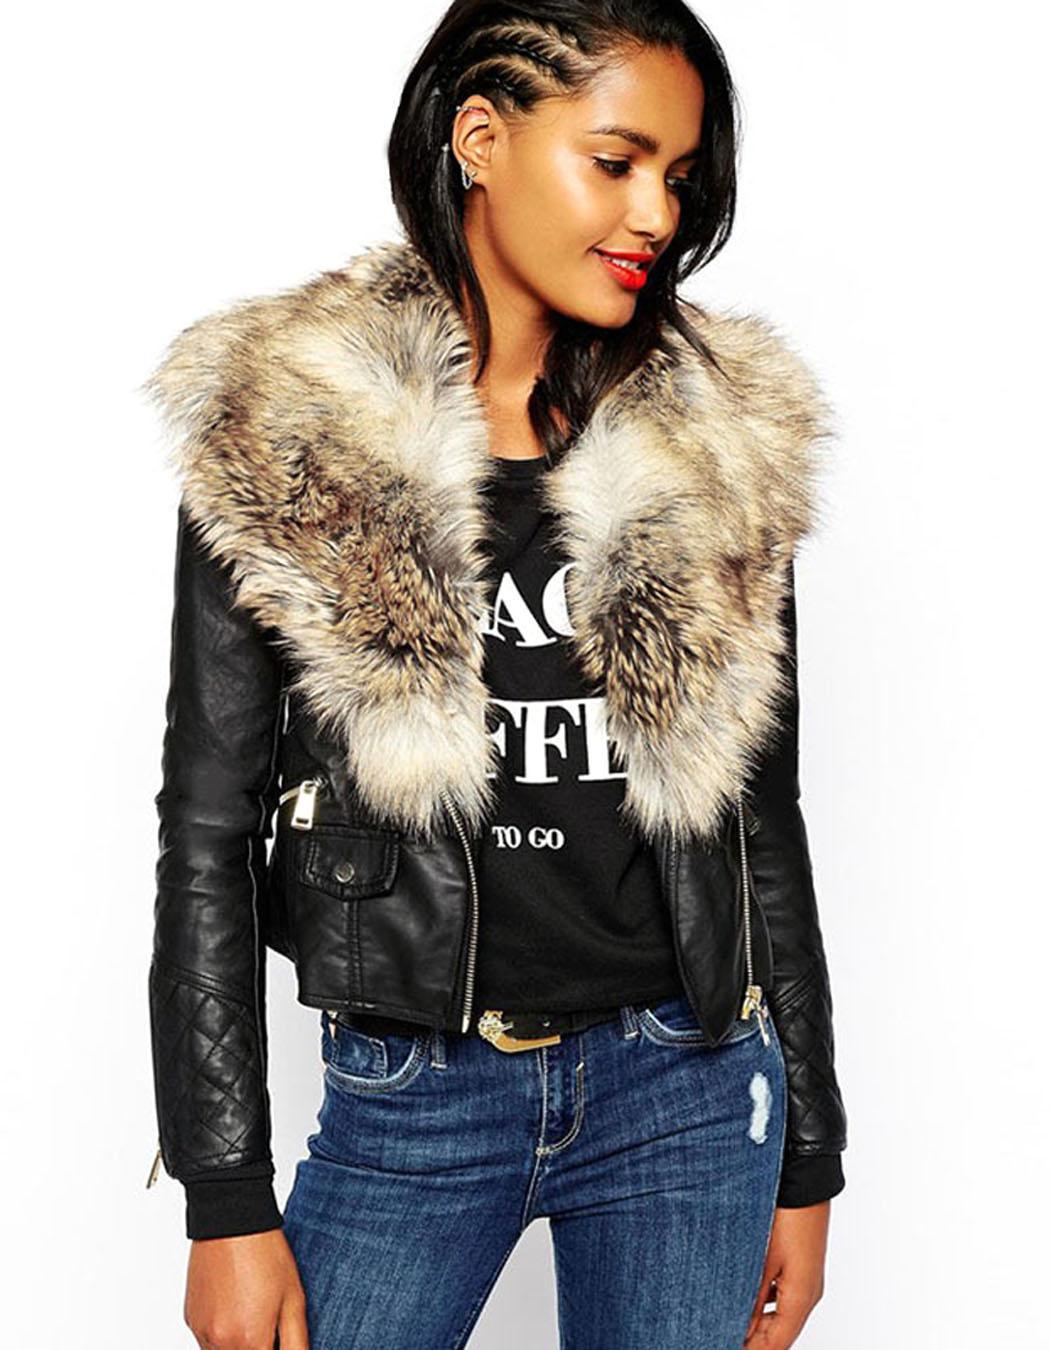 » Top Sale Dorothy Perkins Coat With Faux Fur Collar by Womens Coats Amp Jackets, Women Clothing Online For Sale with a Big Discount at WSDear. Buy Top Quality Fashion Cheap Dresses Clothing For Women From Free Shipping Online Clothes Store.